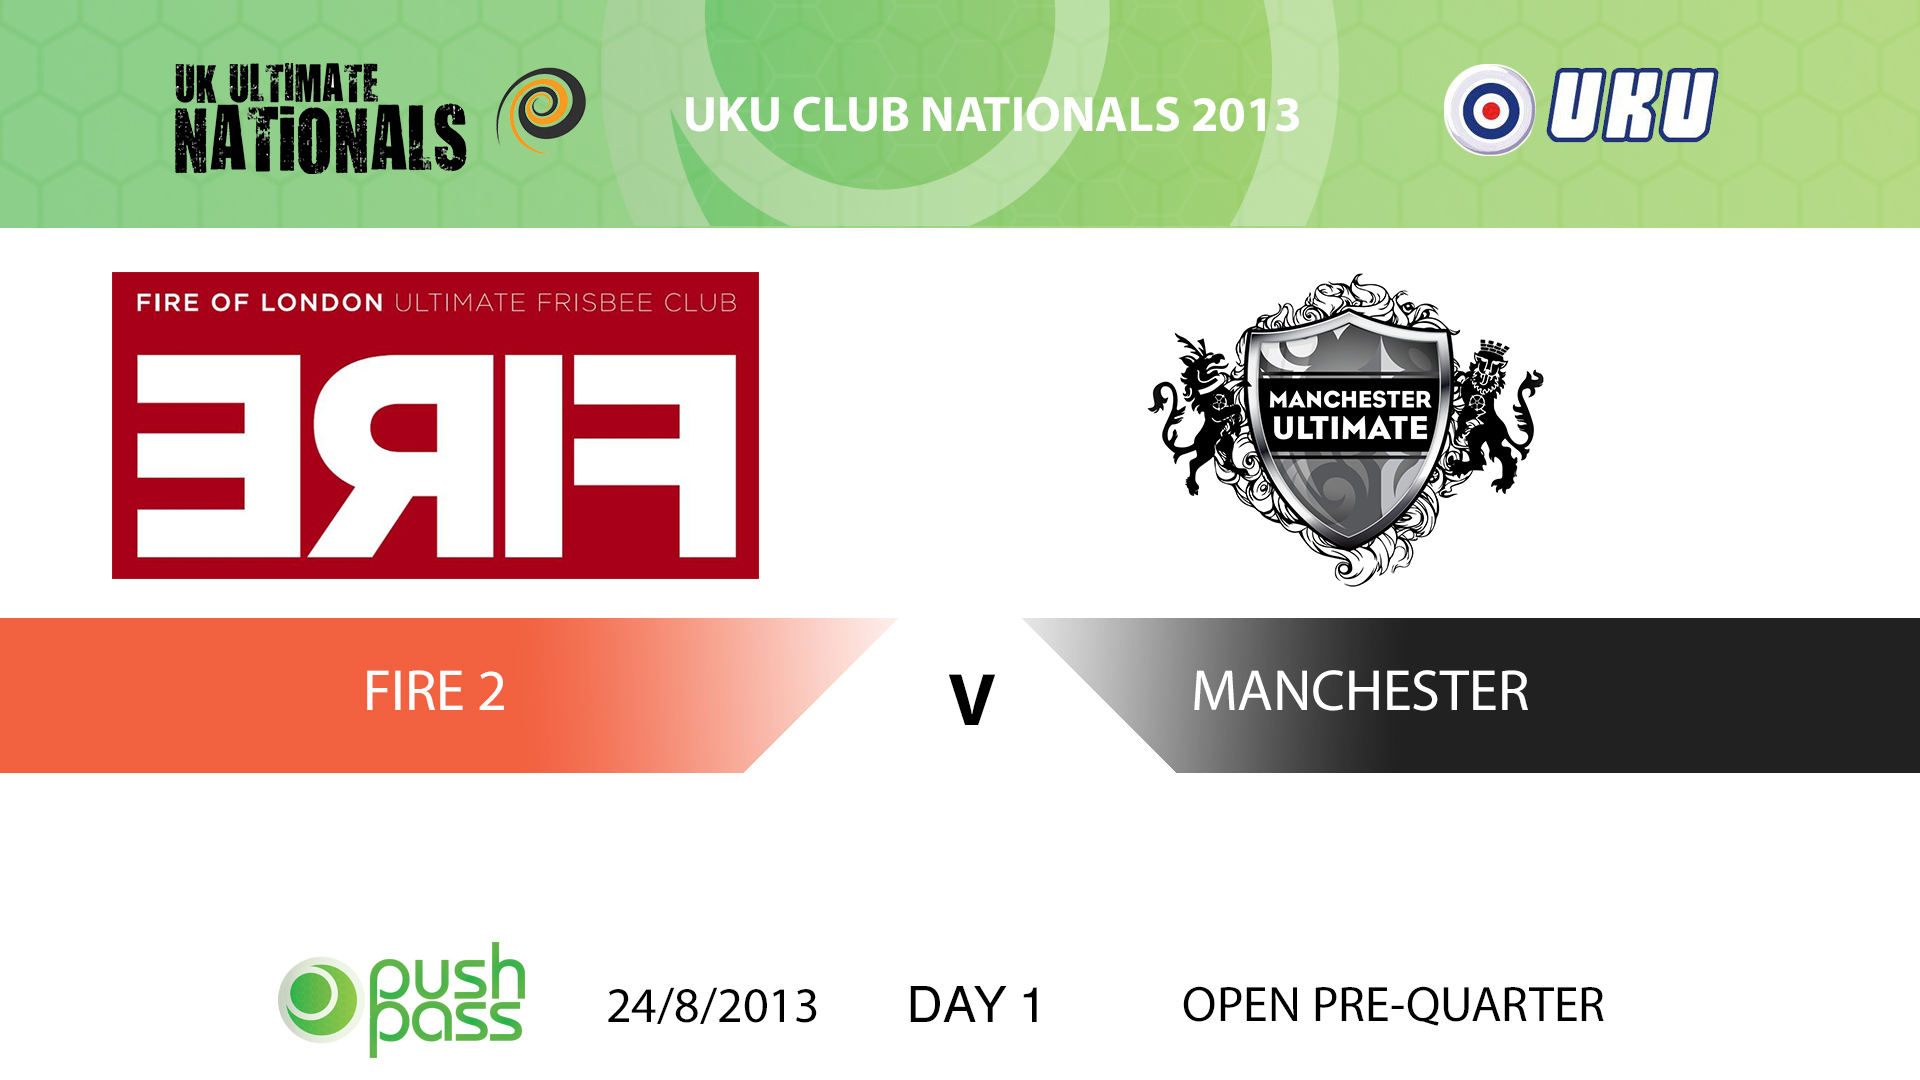 UKU Club Nationals 2013: Fire 2 v Manchester